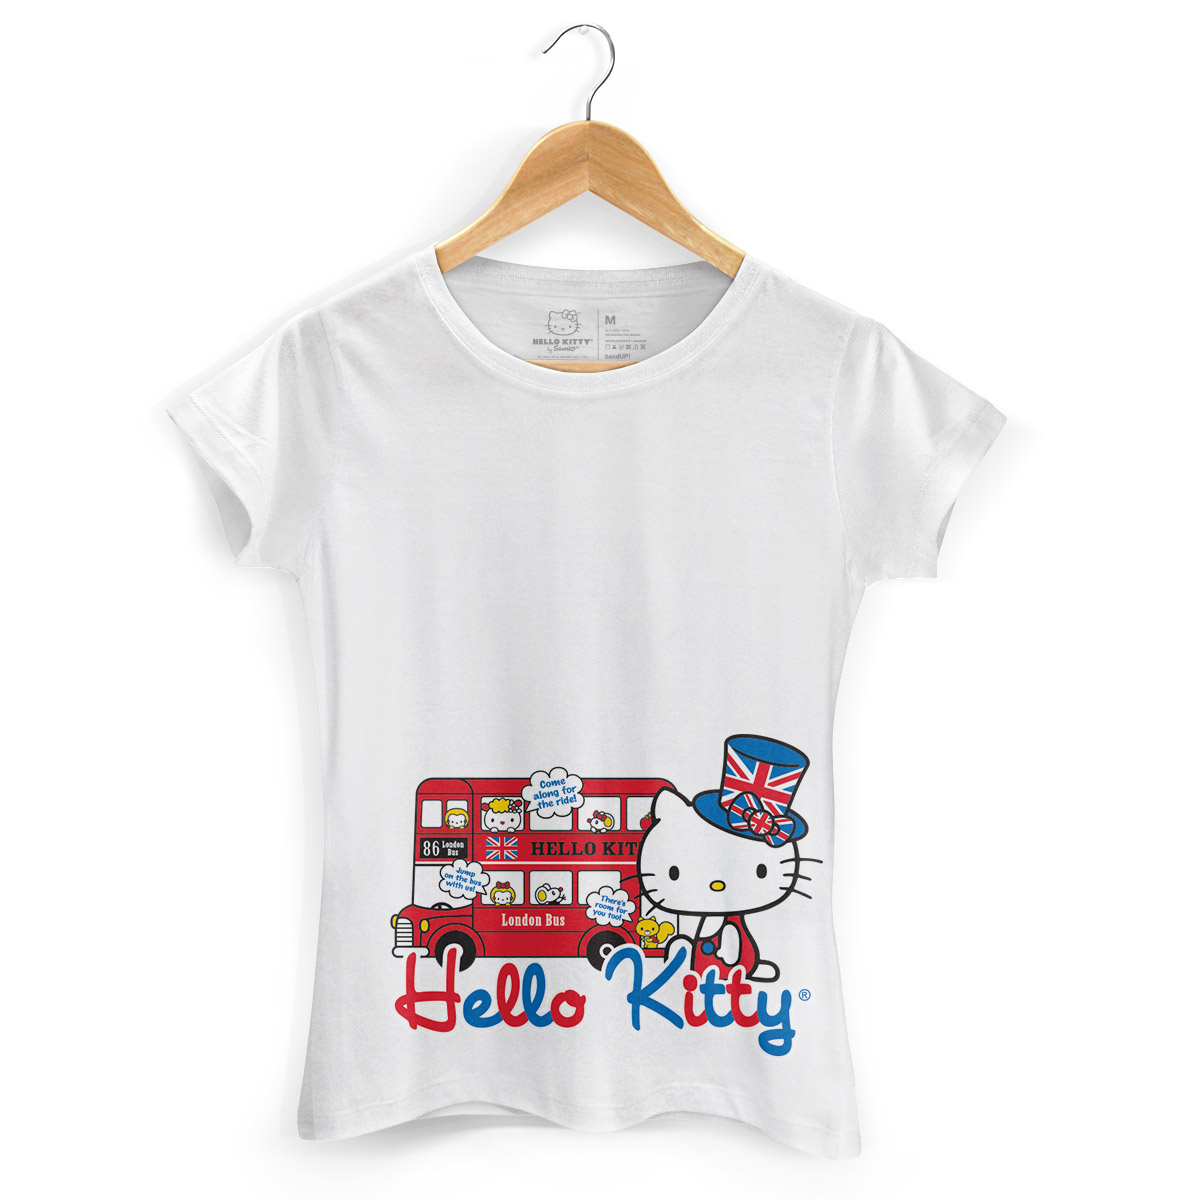 Camiseta Hello Kitty London Bus